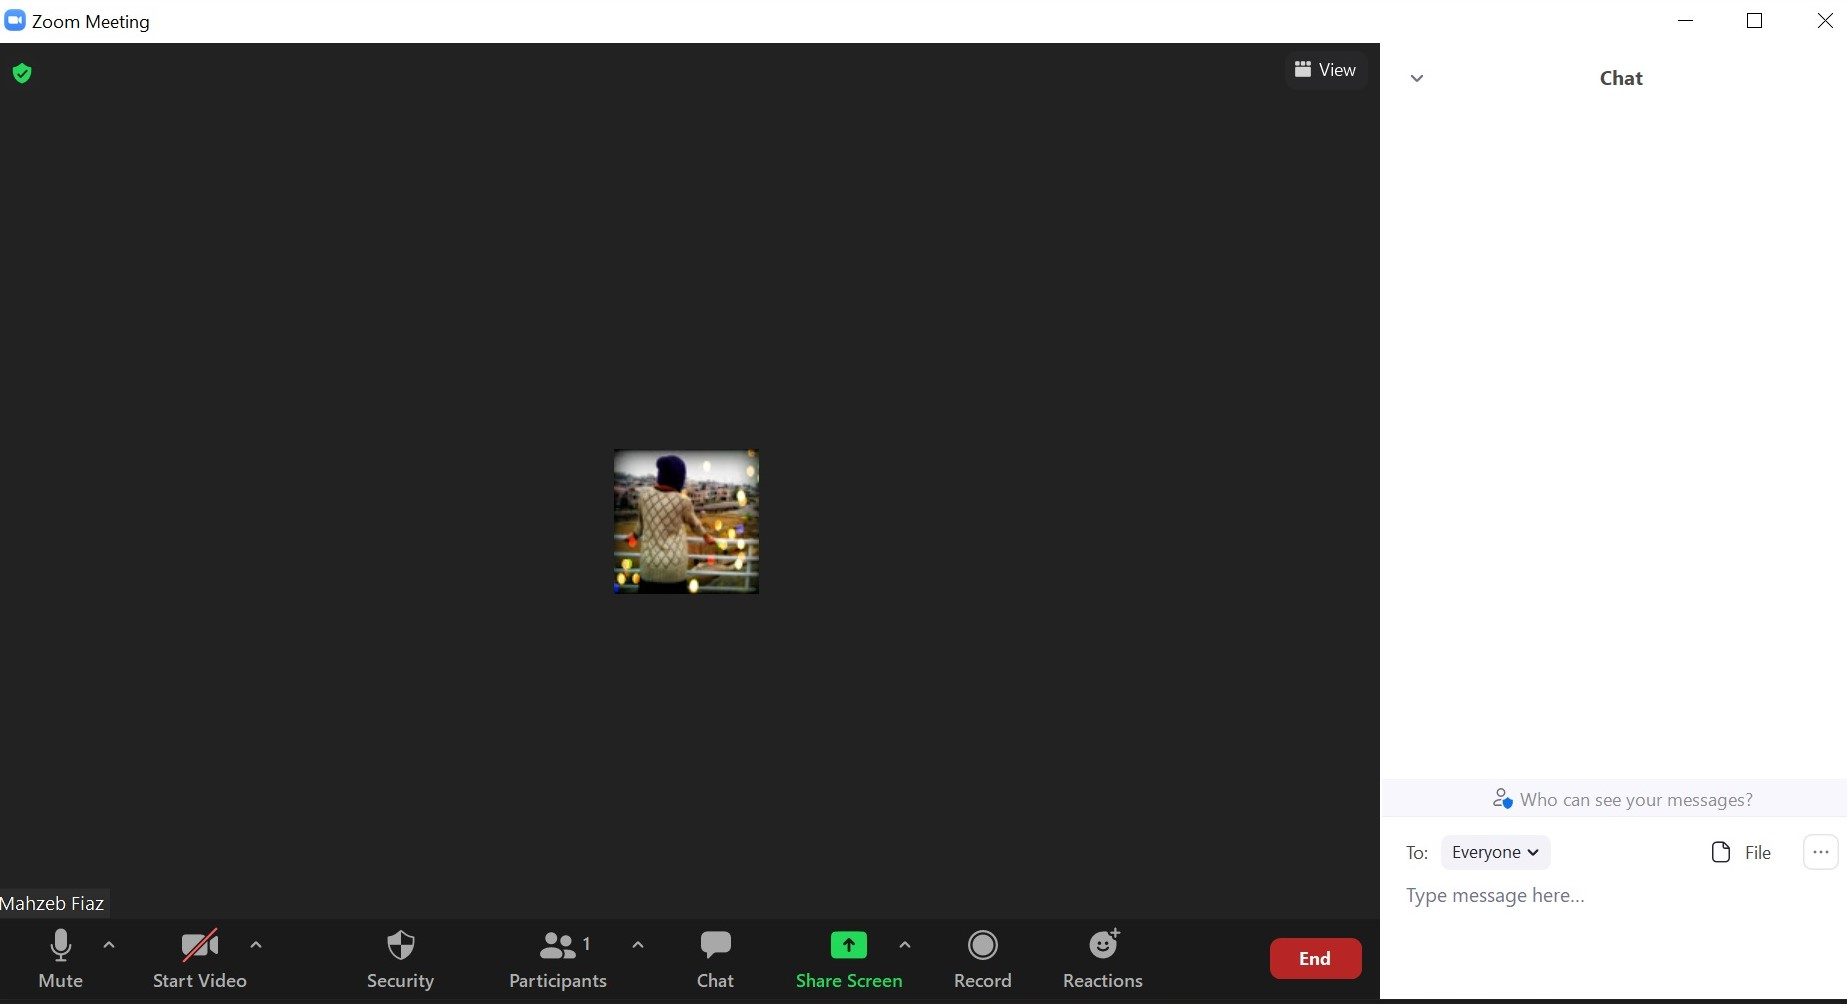 Zoom Chat Window